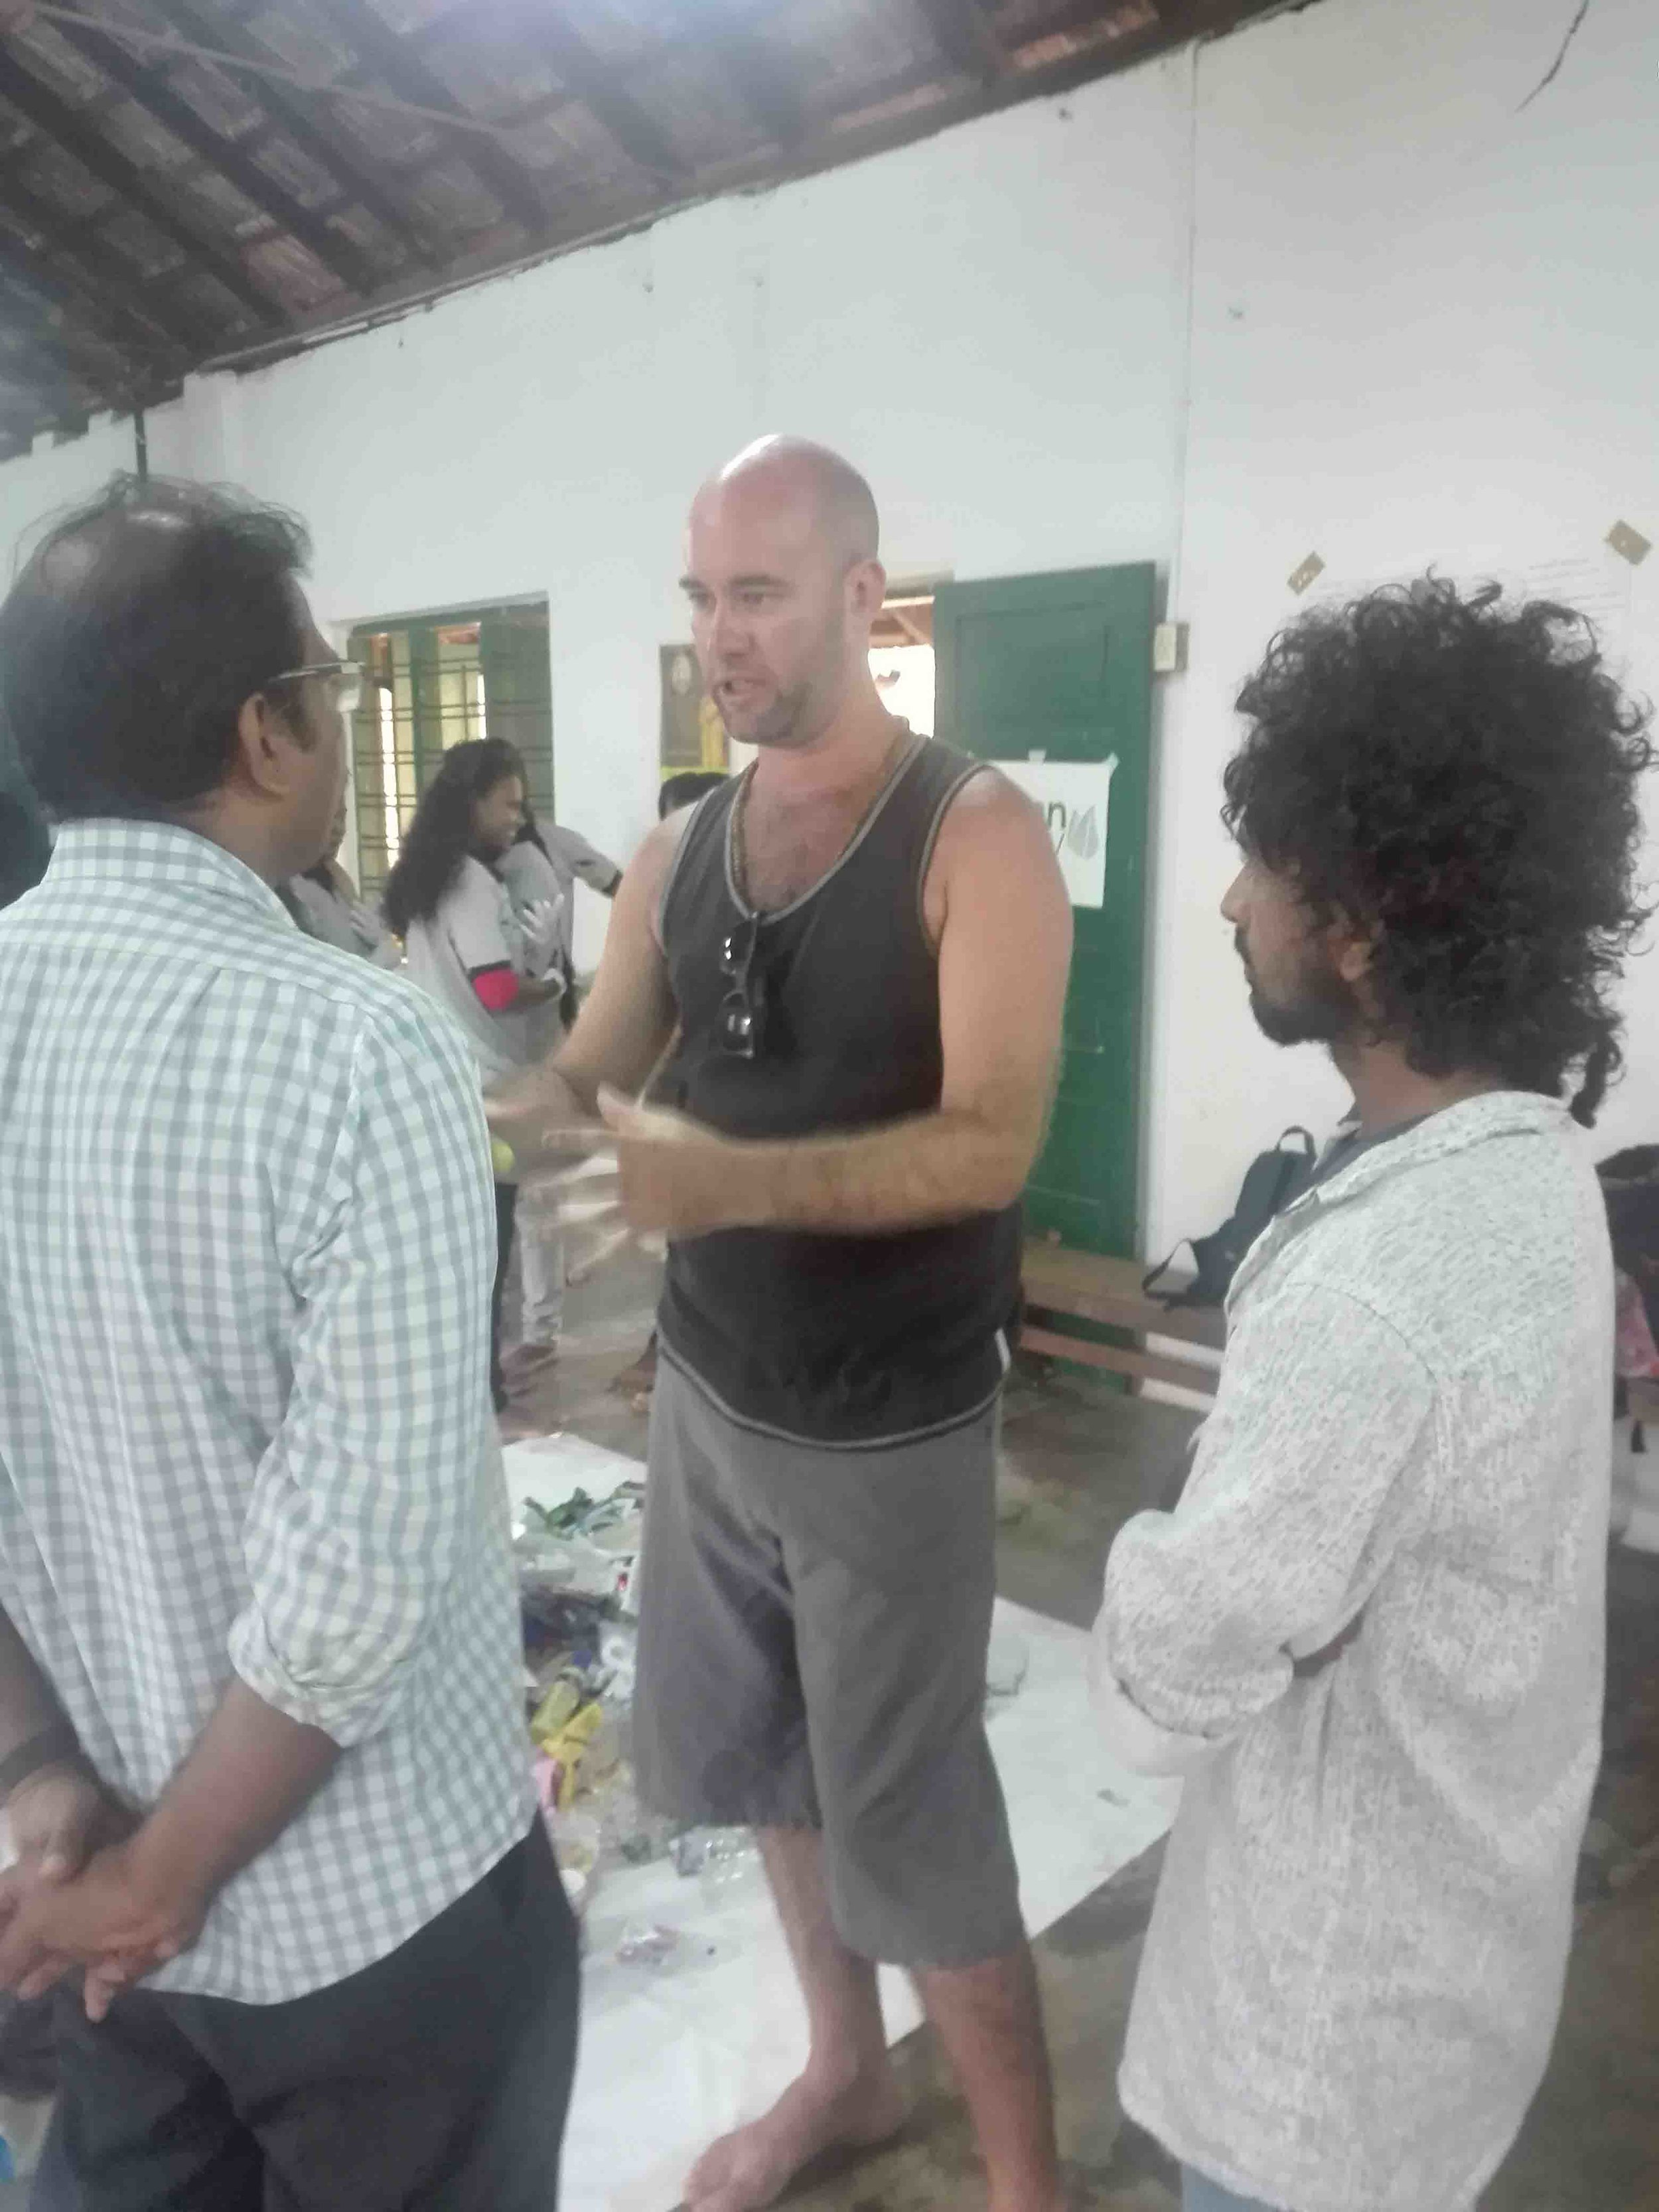 Blake and Krishna (our Global Program Coordinators) meeting with representatives from the Green Army.